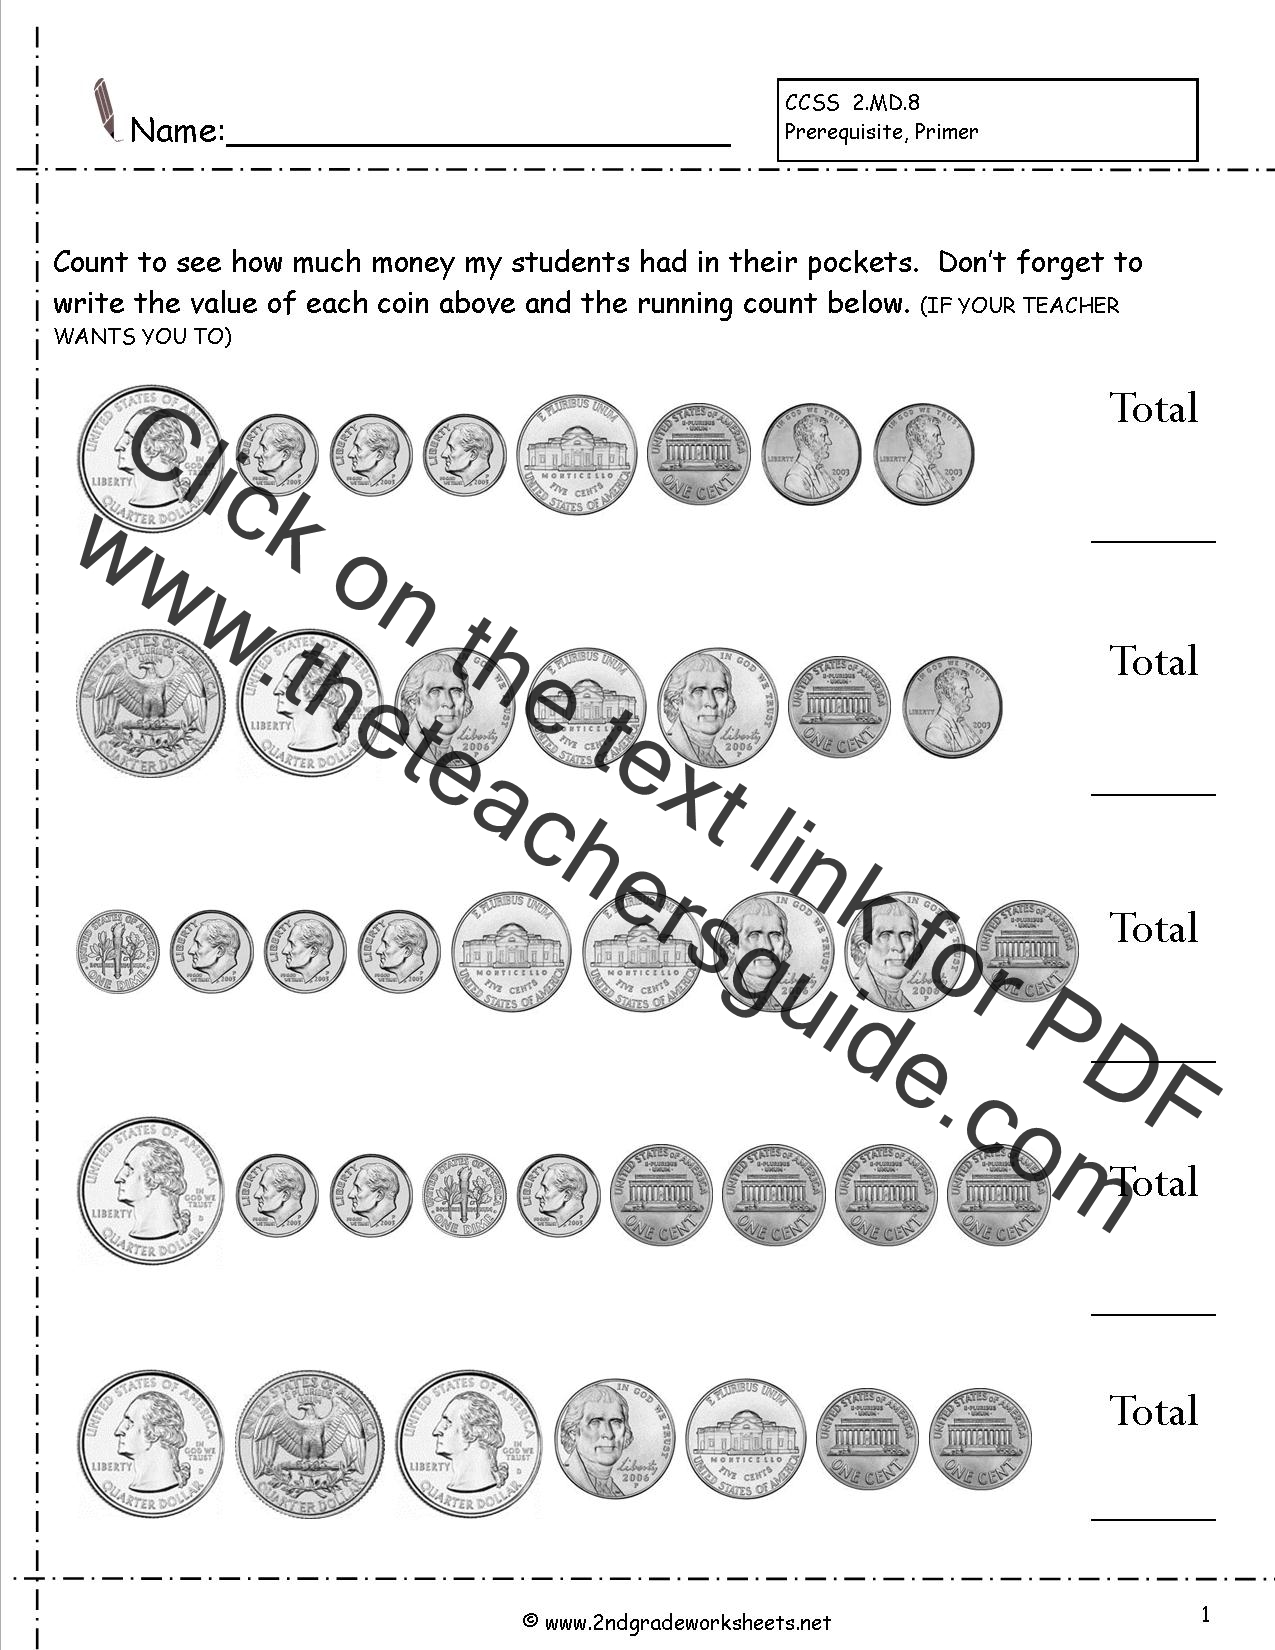 Worksheets Free Money Counting Worksheets counting coins and money worksheets printouts with quarters